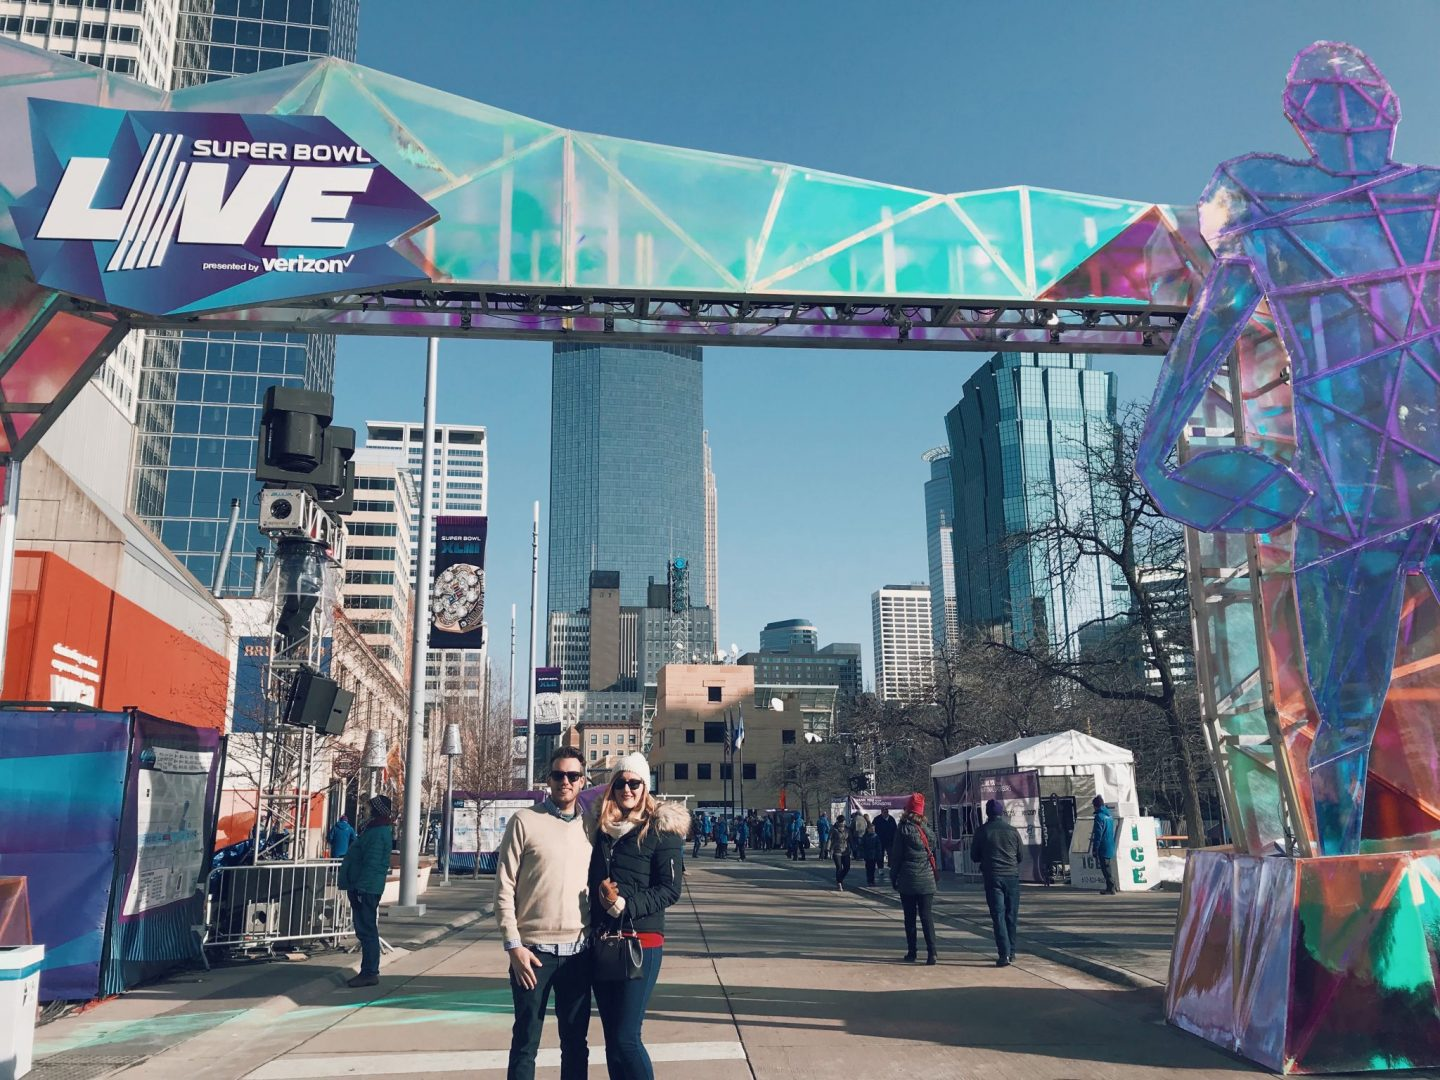 Super Bowl 52 Minneapolis